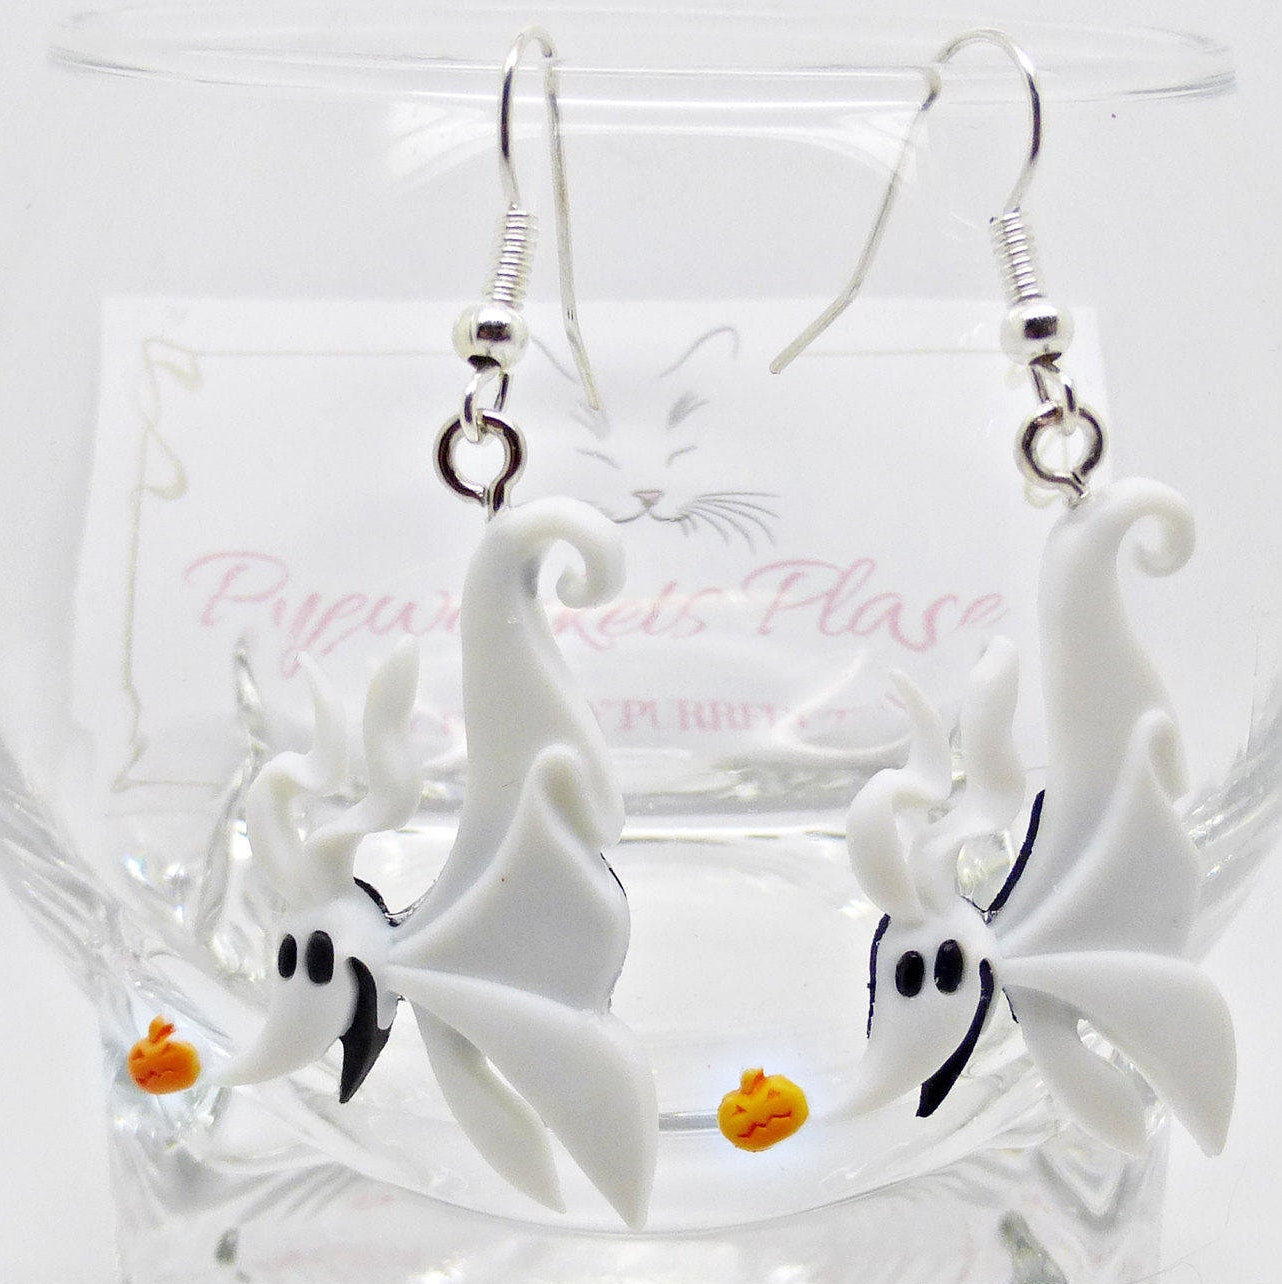 Nightmare Before Christmas Gifts Uk: Nightmare Before Christmas Earrings ZERO The Dog Earrings